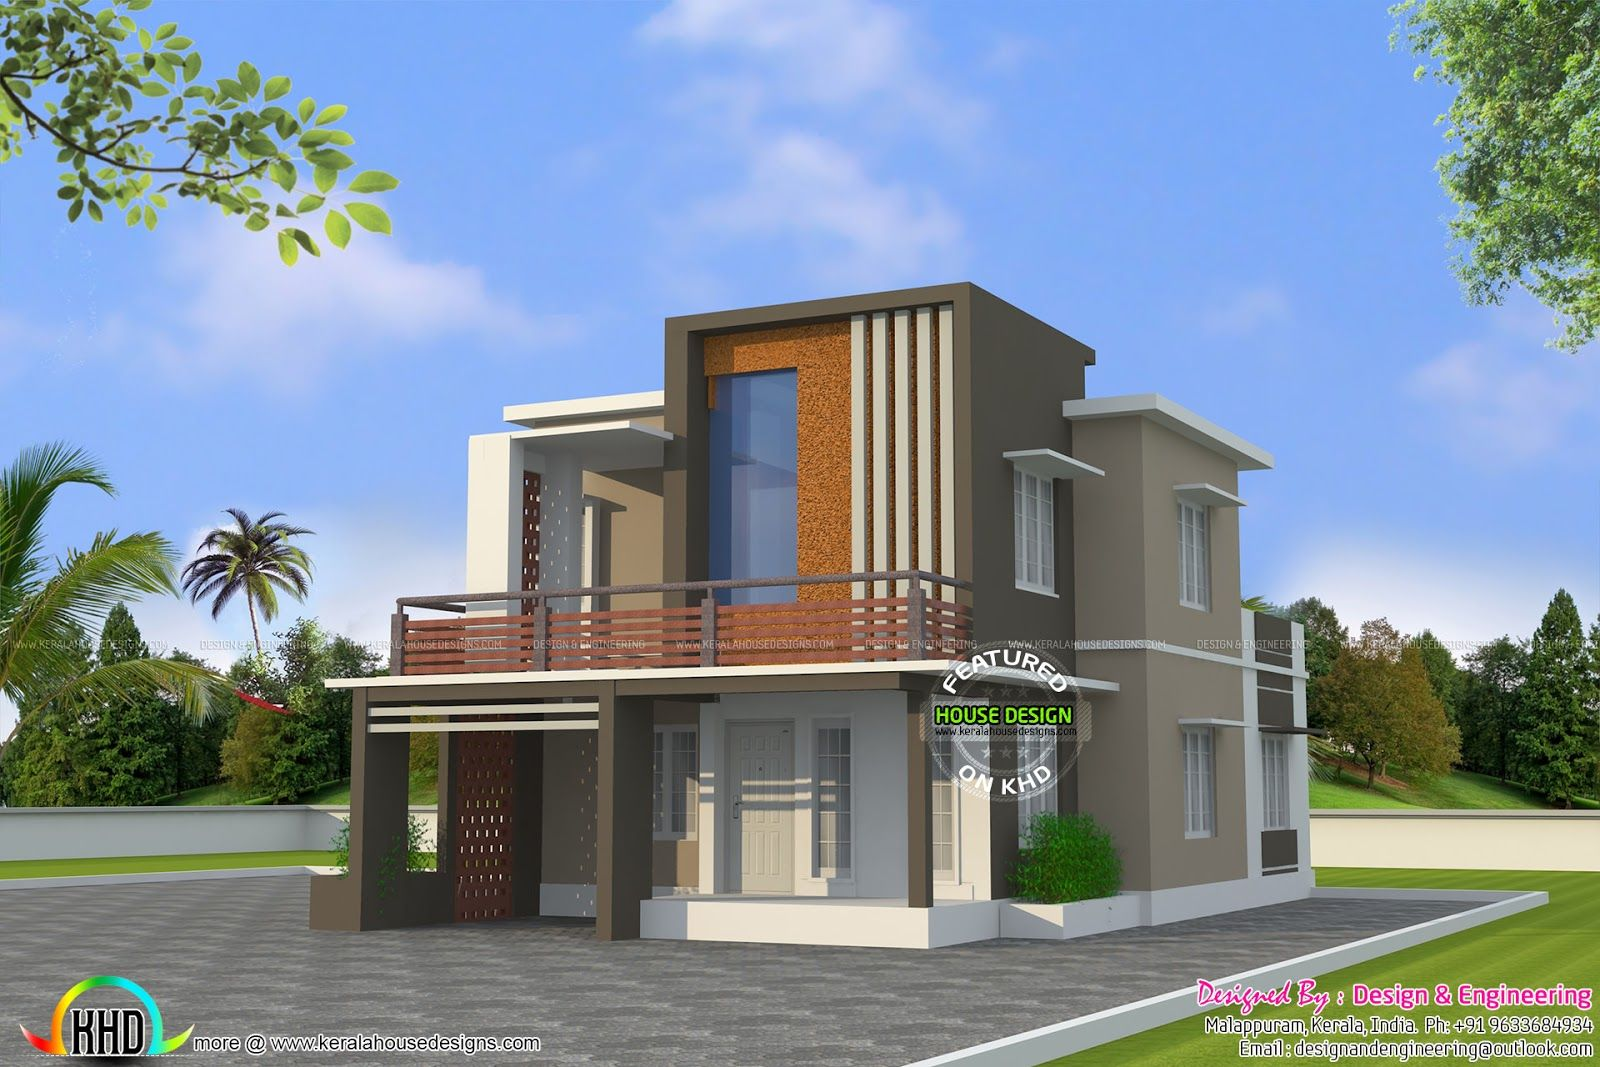 Indian House Outlook Design - Modern House